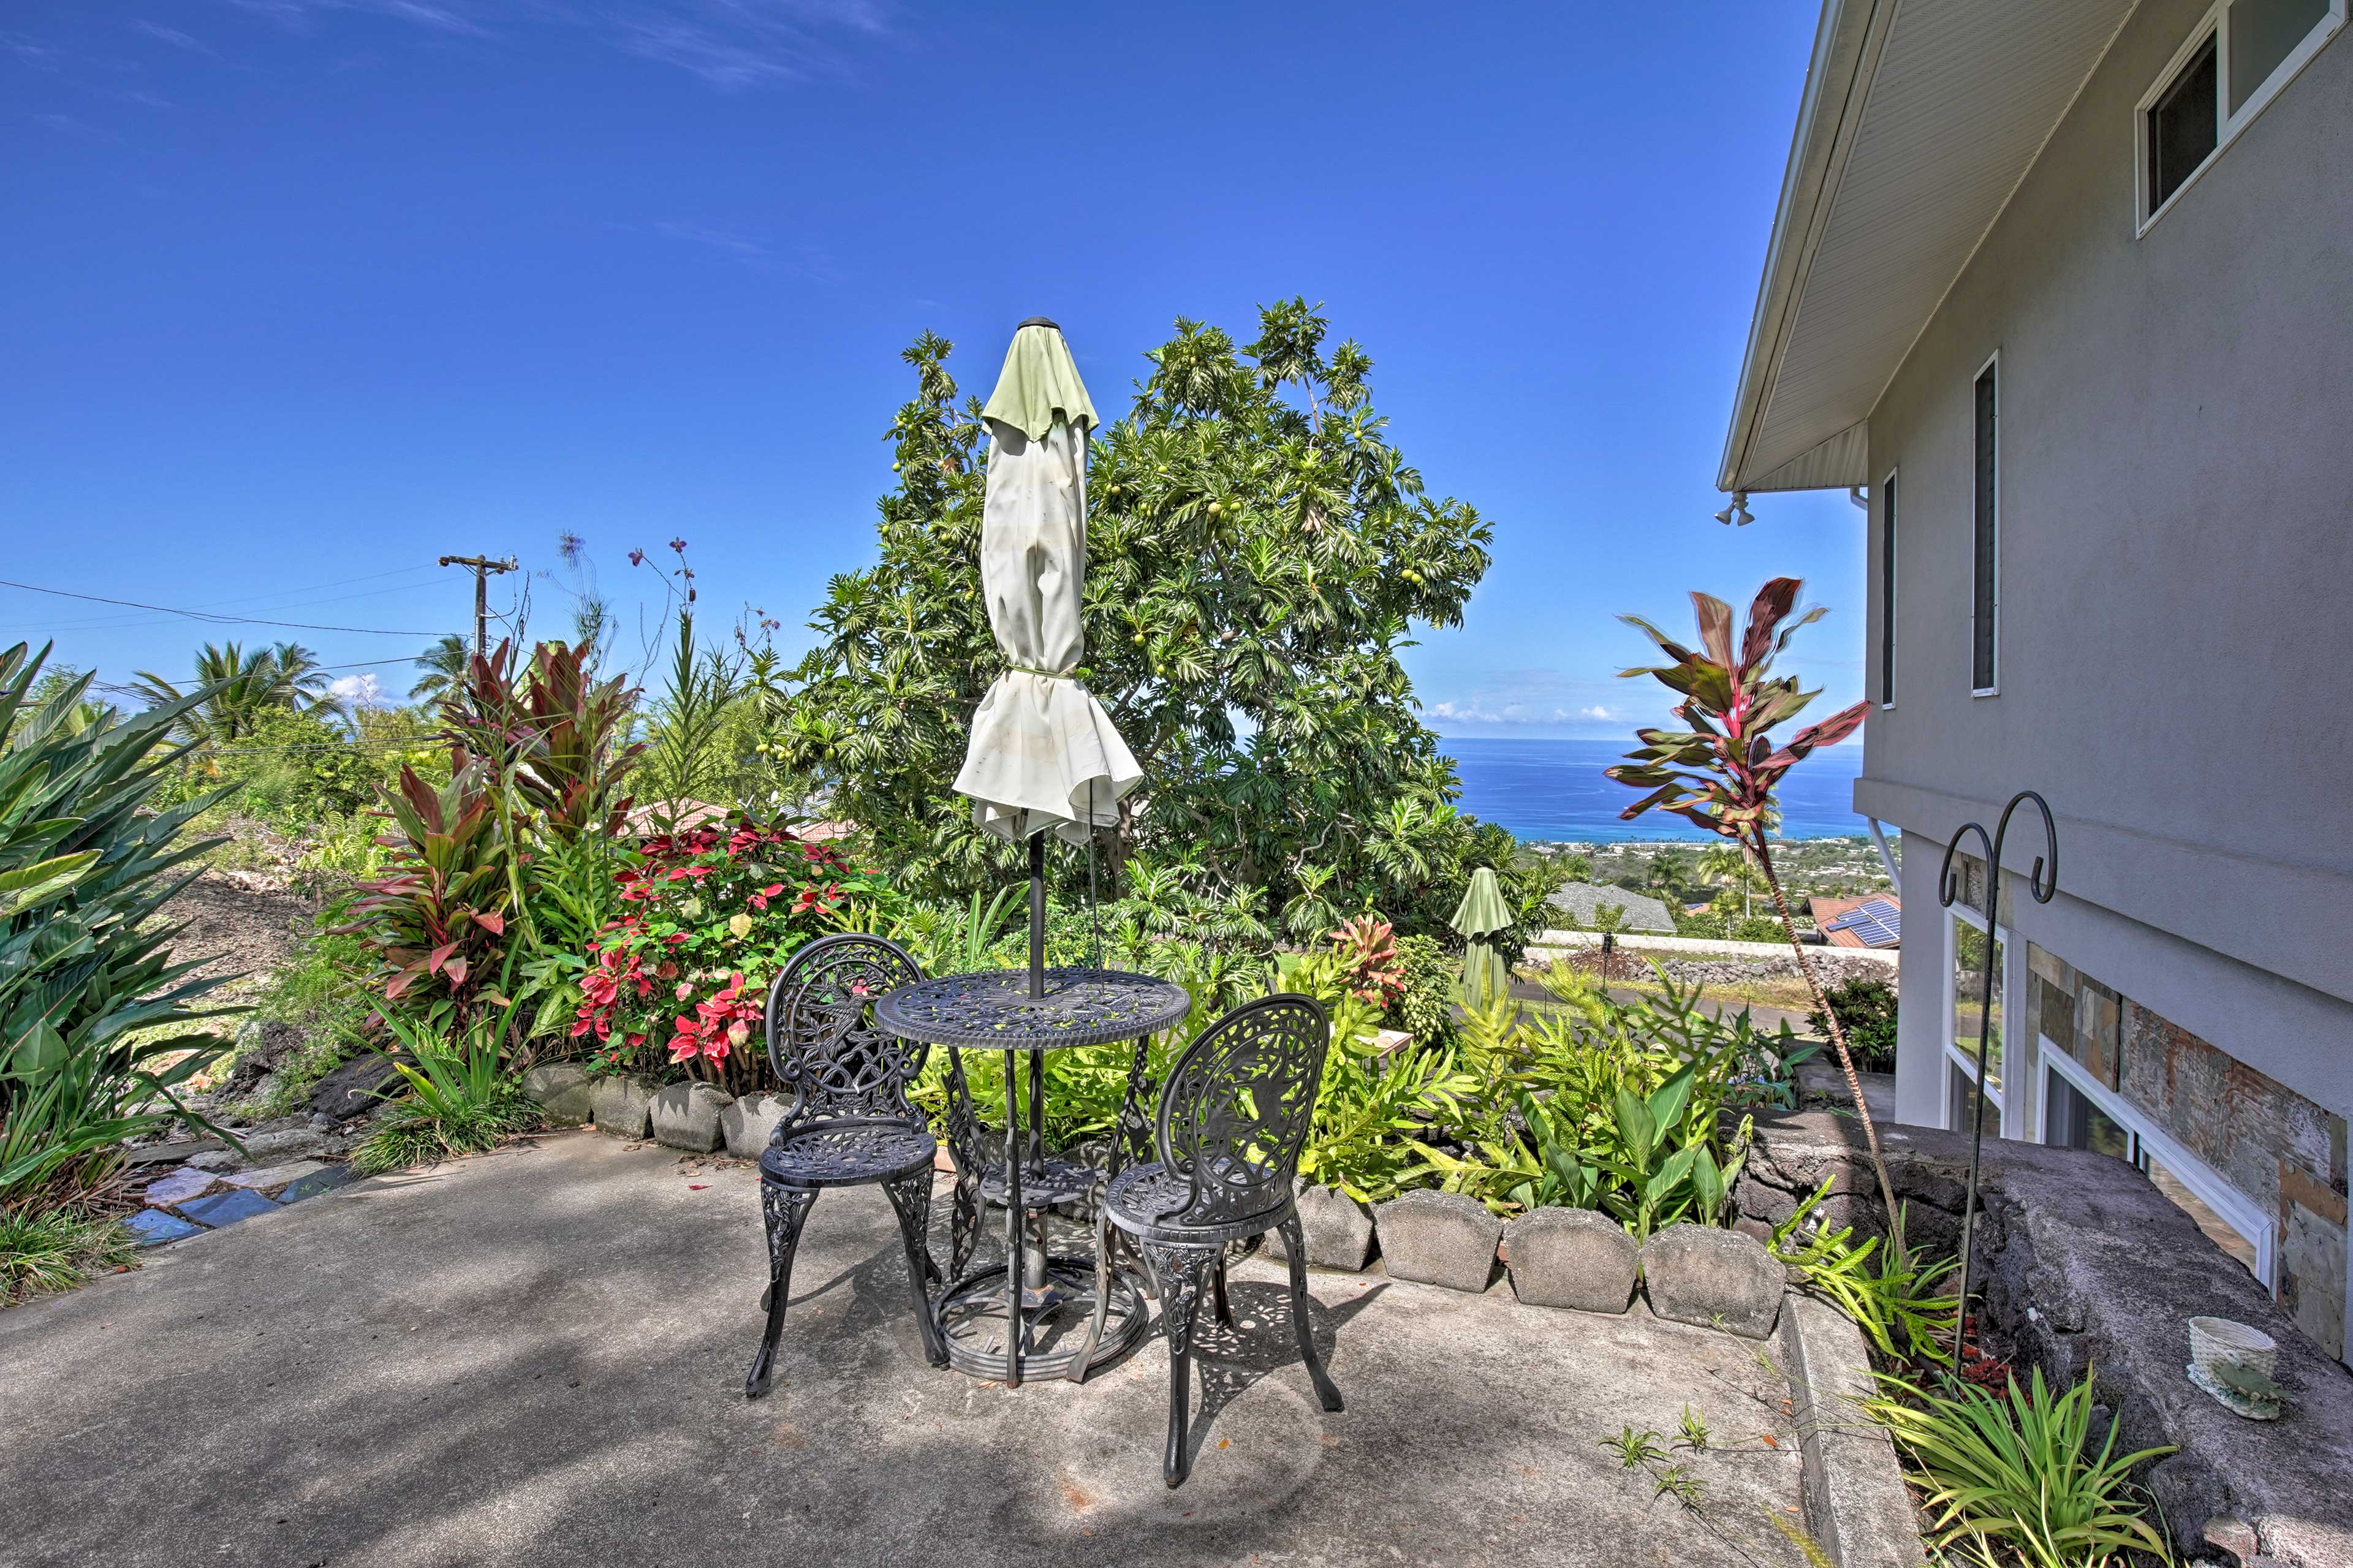 Brew some Kona coffee to enjoy out at the bistro table.